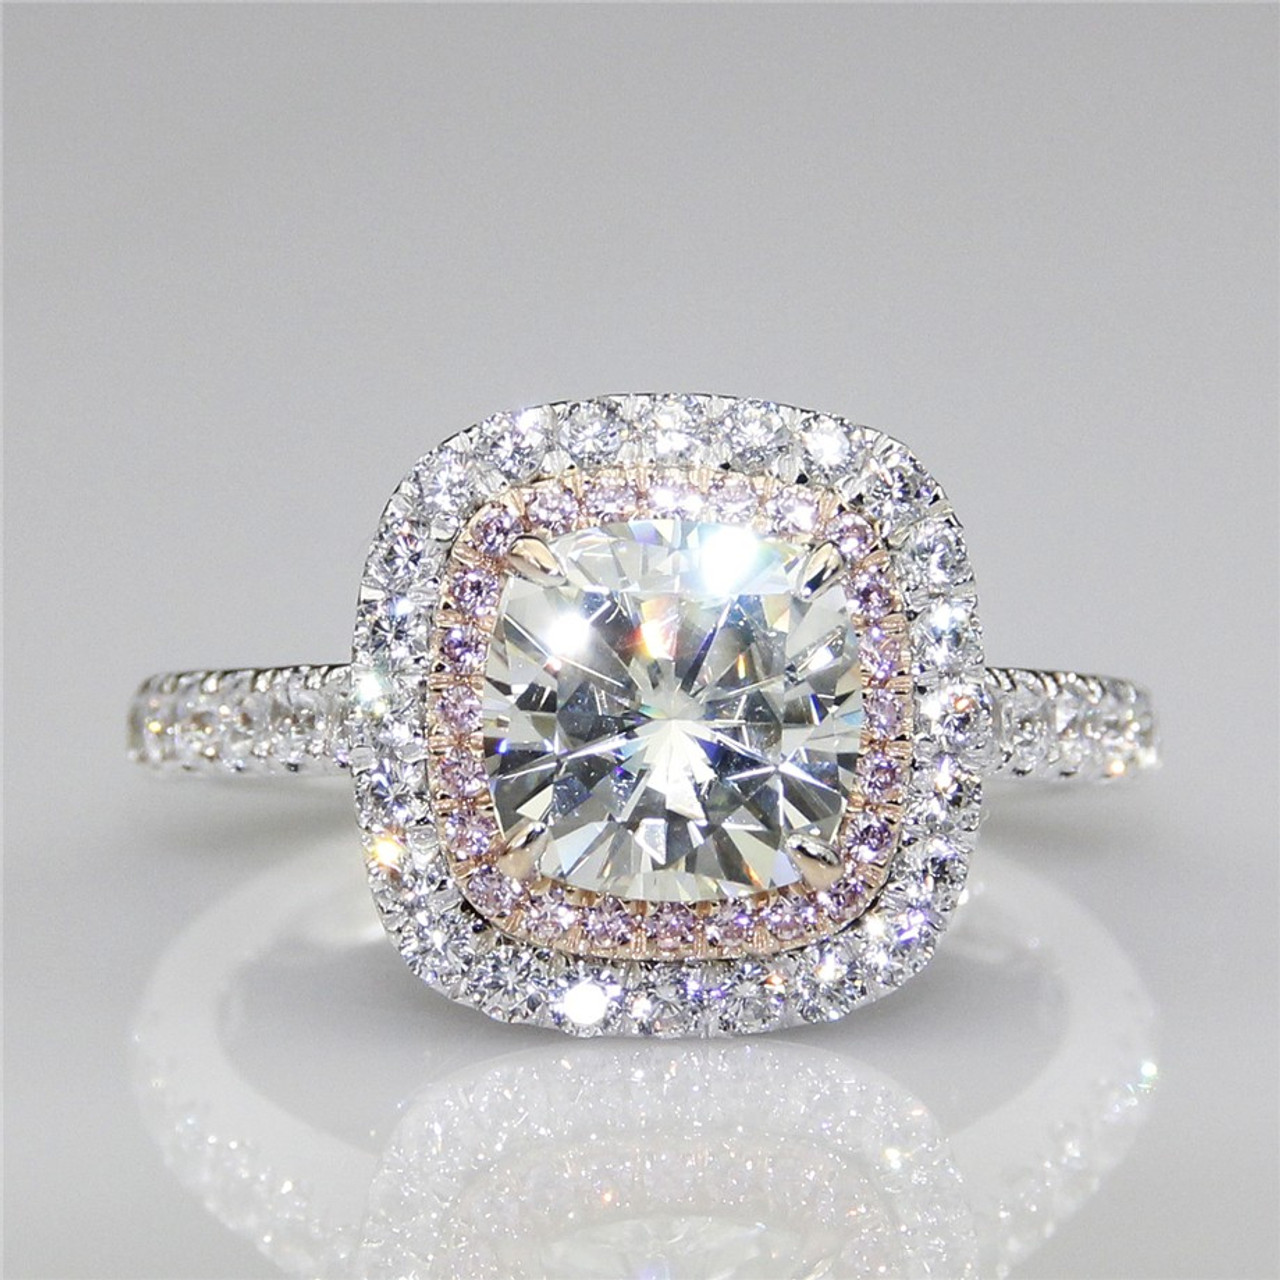 engagement cut one ameliad carat moissanite cushion forever ring rings model amelia product